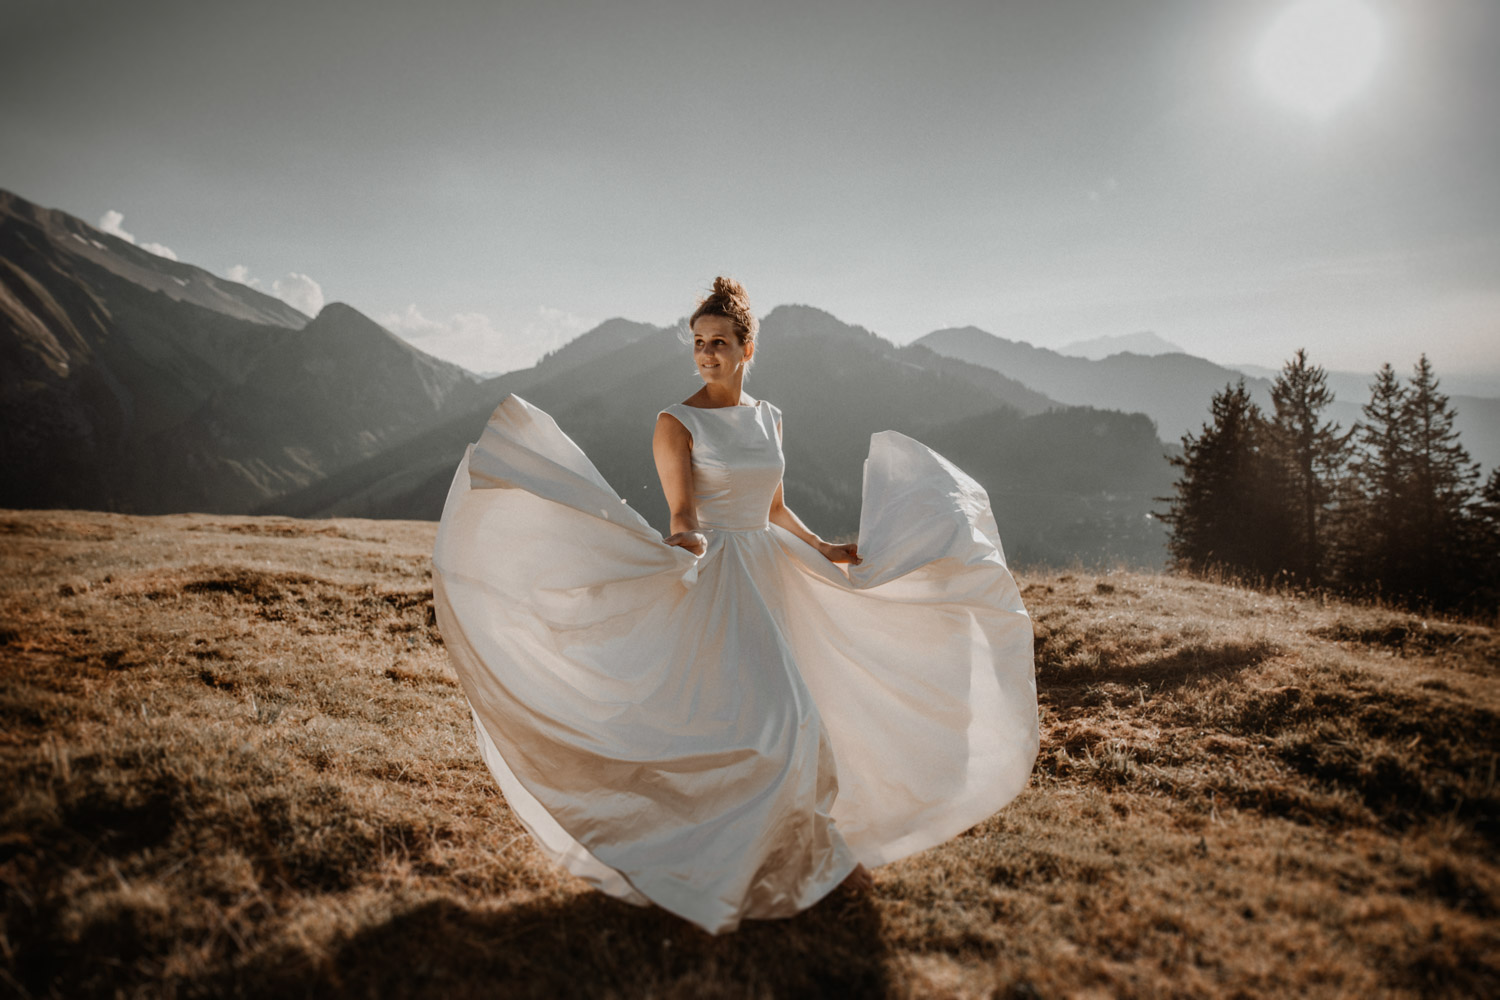 After Wedding Shooting Paarshooting in den Bergen Hochzeitsfotografin Niederbauen Chulm Paarfotos Brautkleid Schweiz Nidwalden